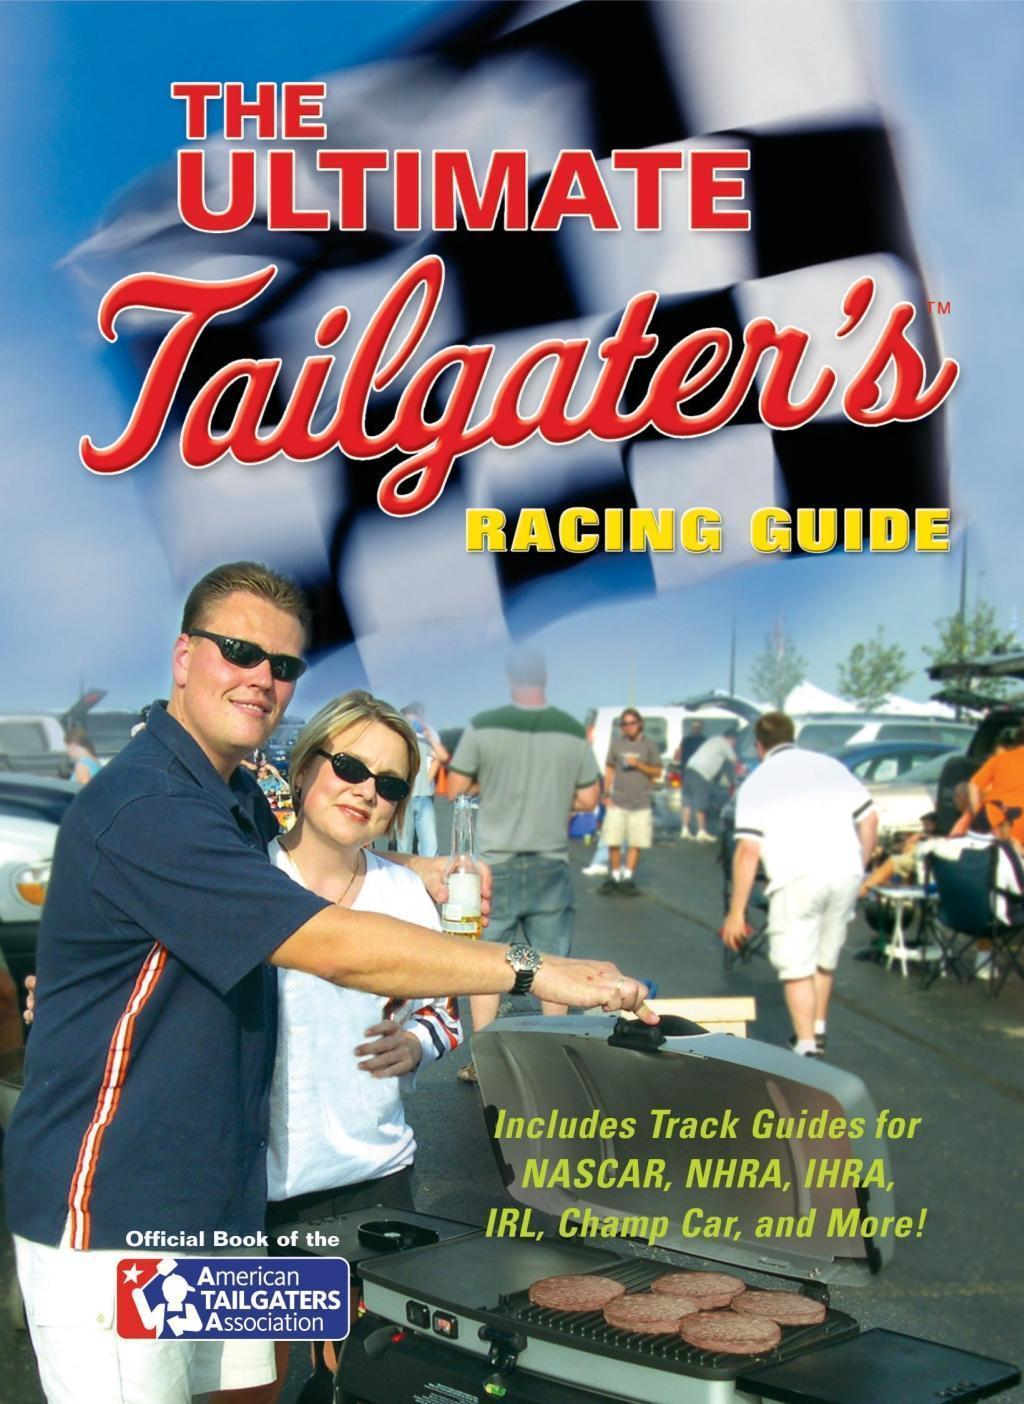 The Ultimate Tailgater's Racing Guide